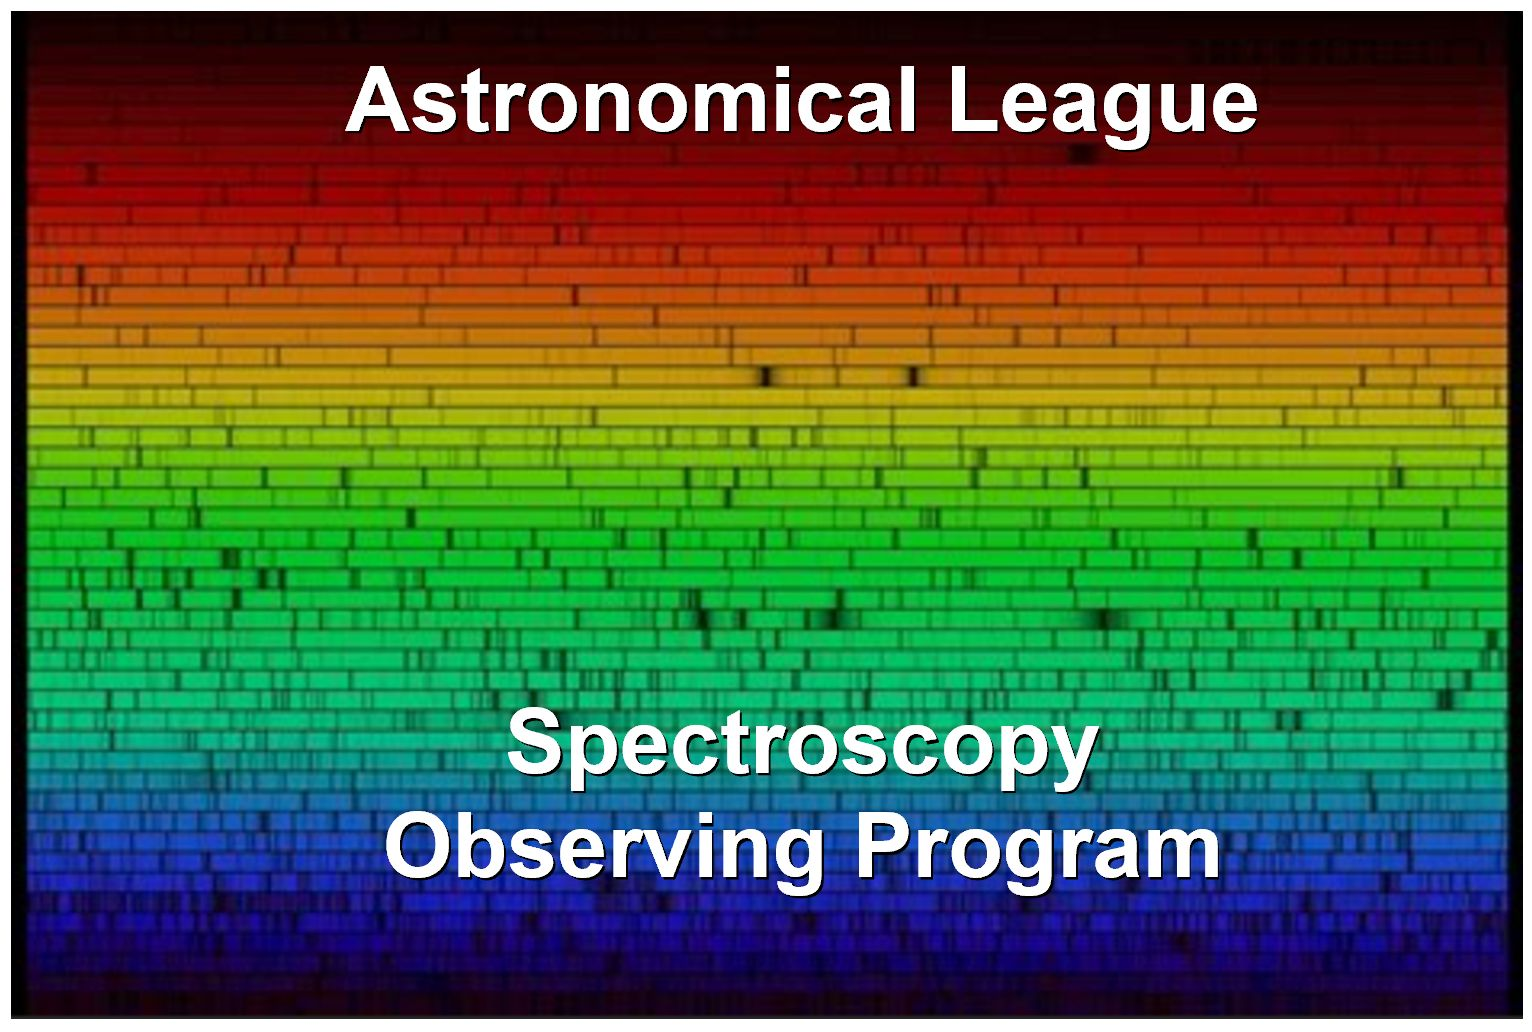 Spectroscopy Observing Progrma Pin